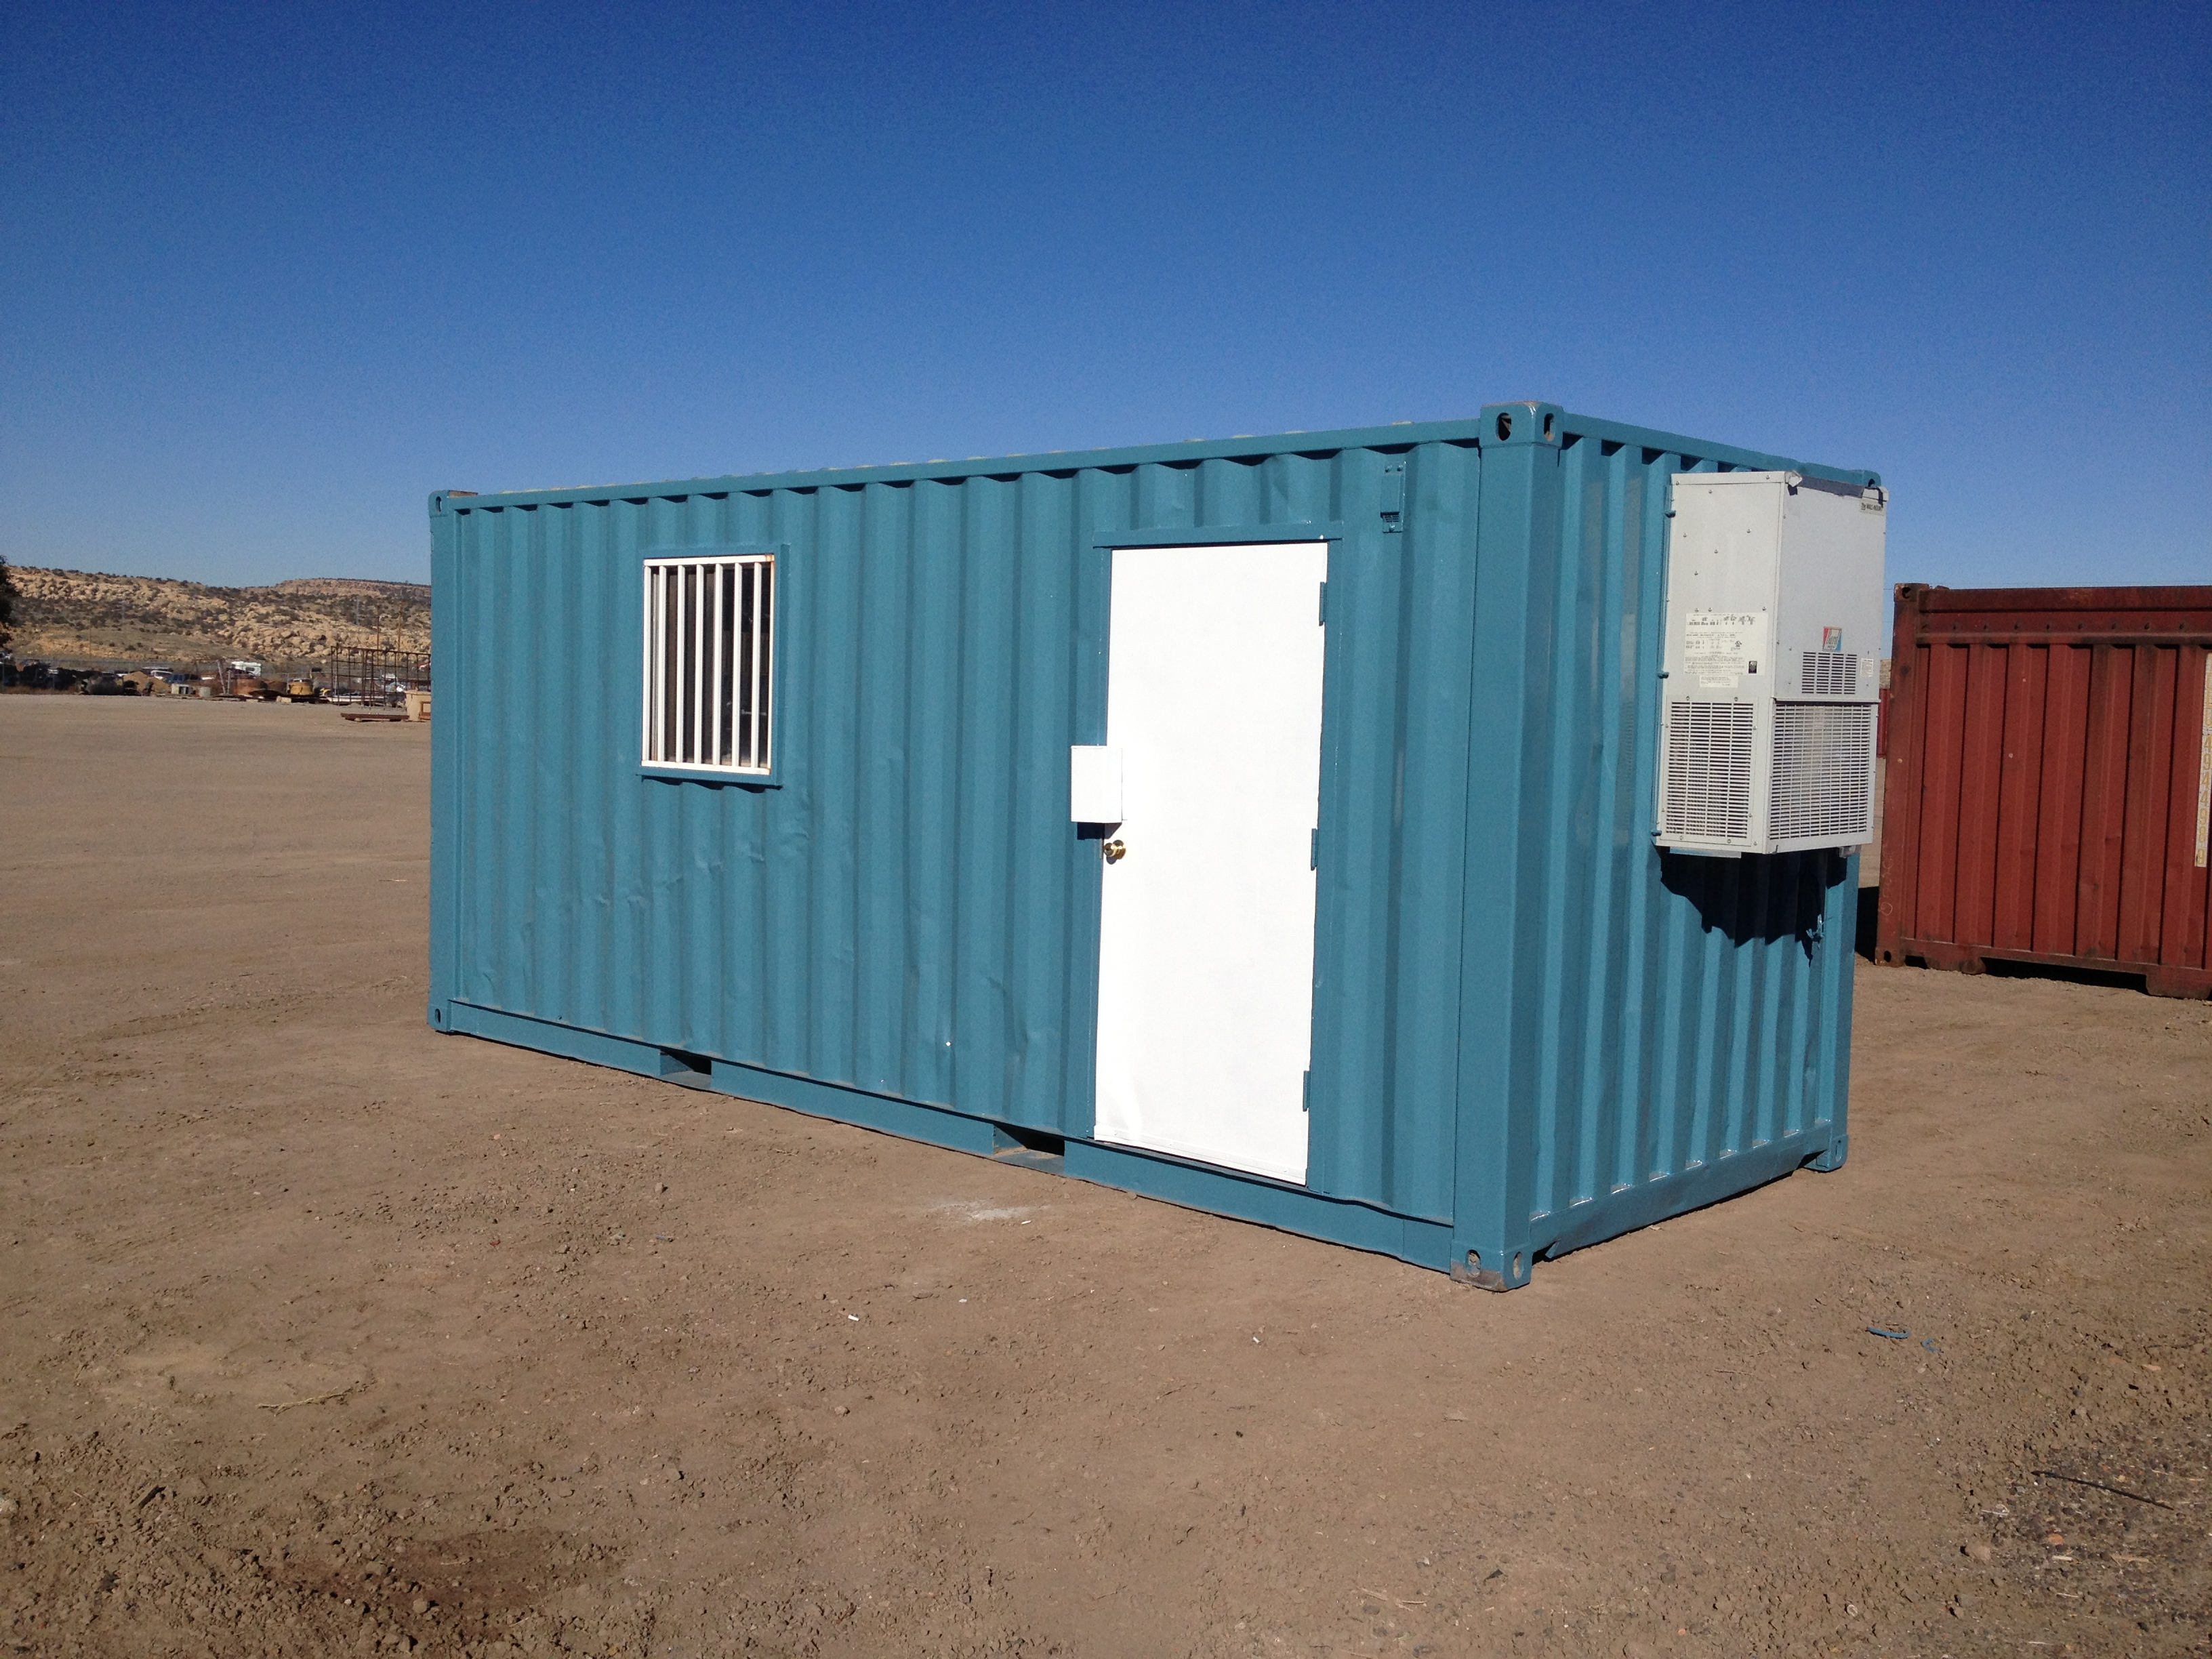 20 Portable Storage : Ft climate controlled container